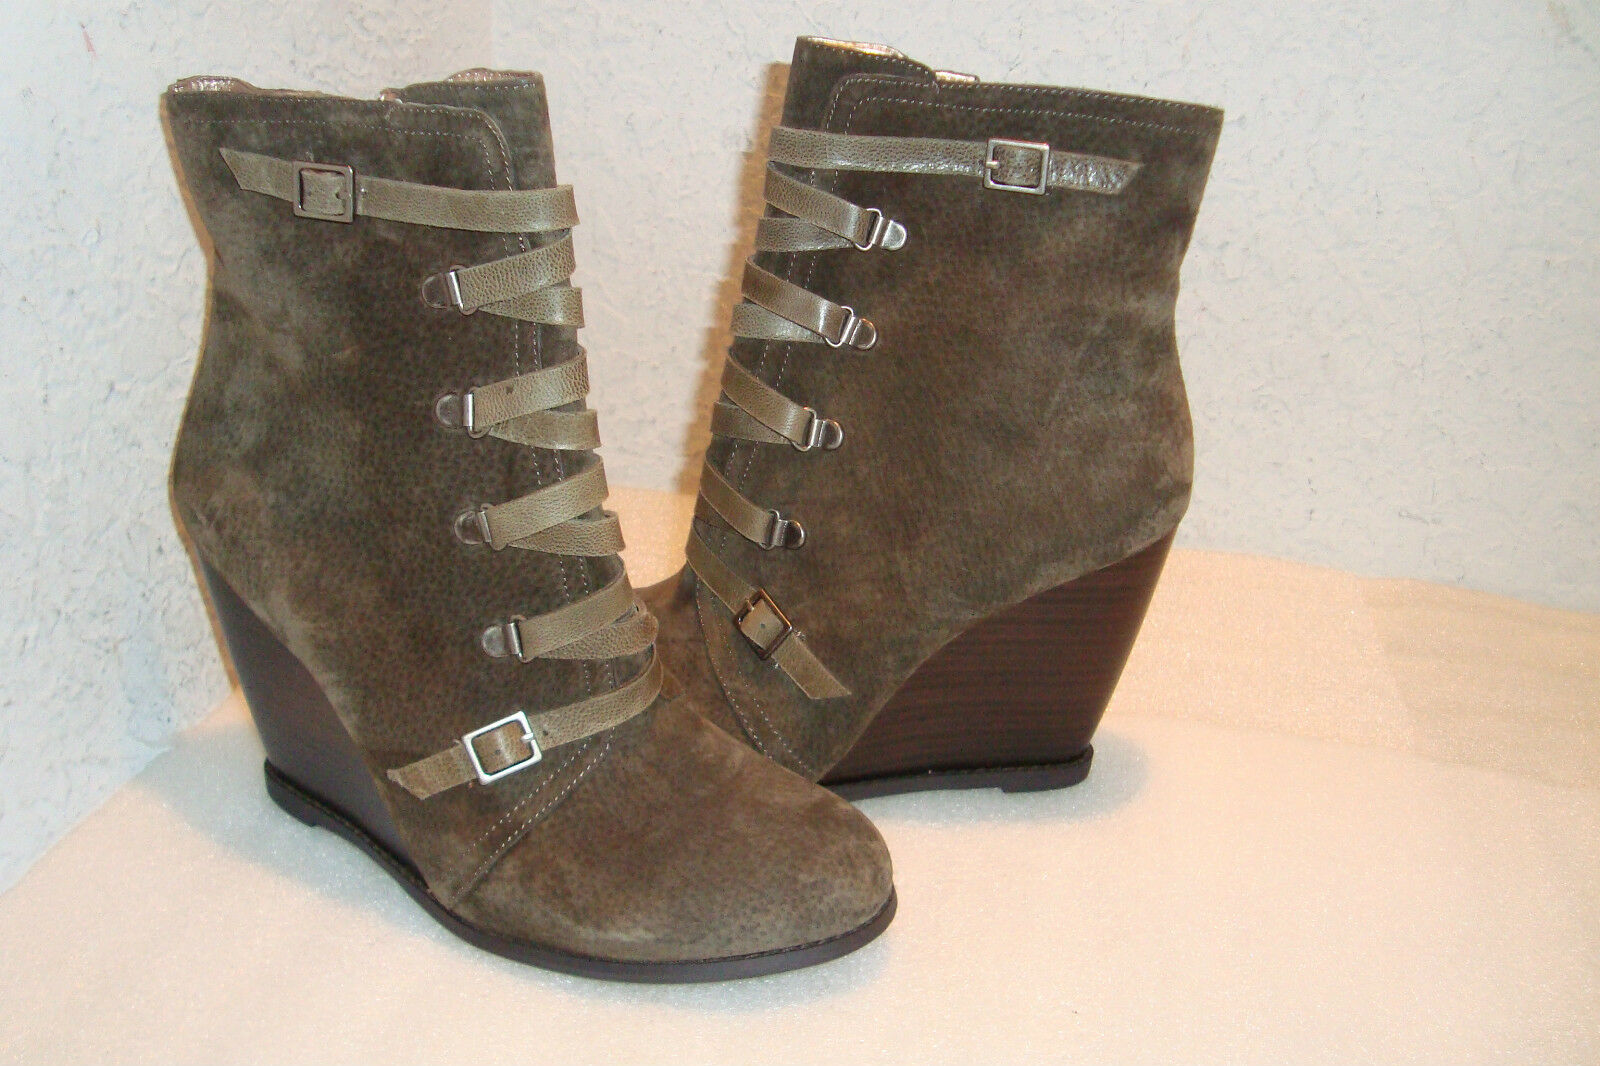 BCBGeneration BCBG Womens NWOB Army Kadeer Ankle Bootie Shoes 9.5 MED NEW